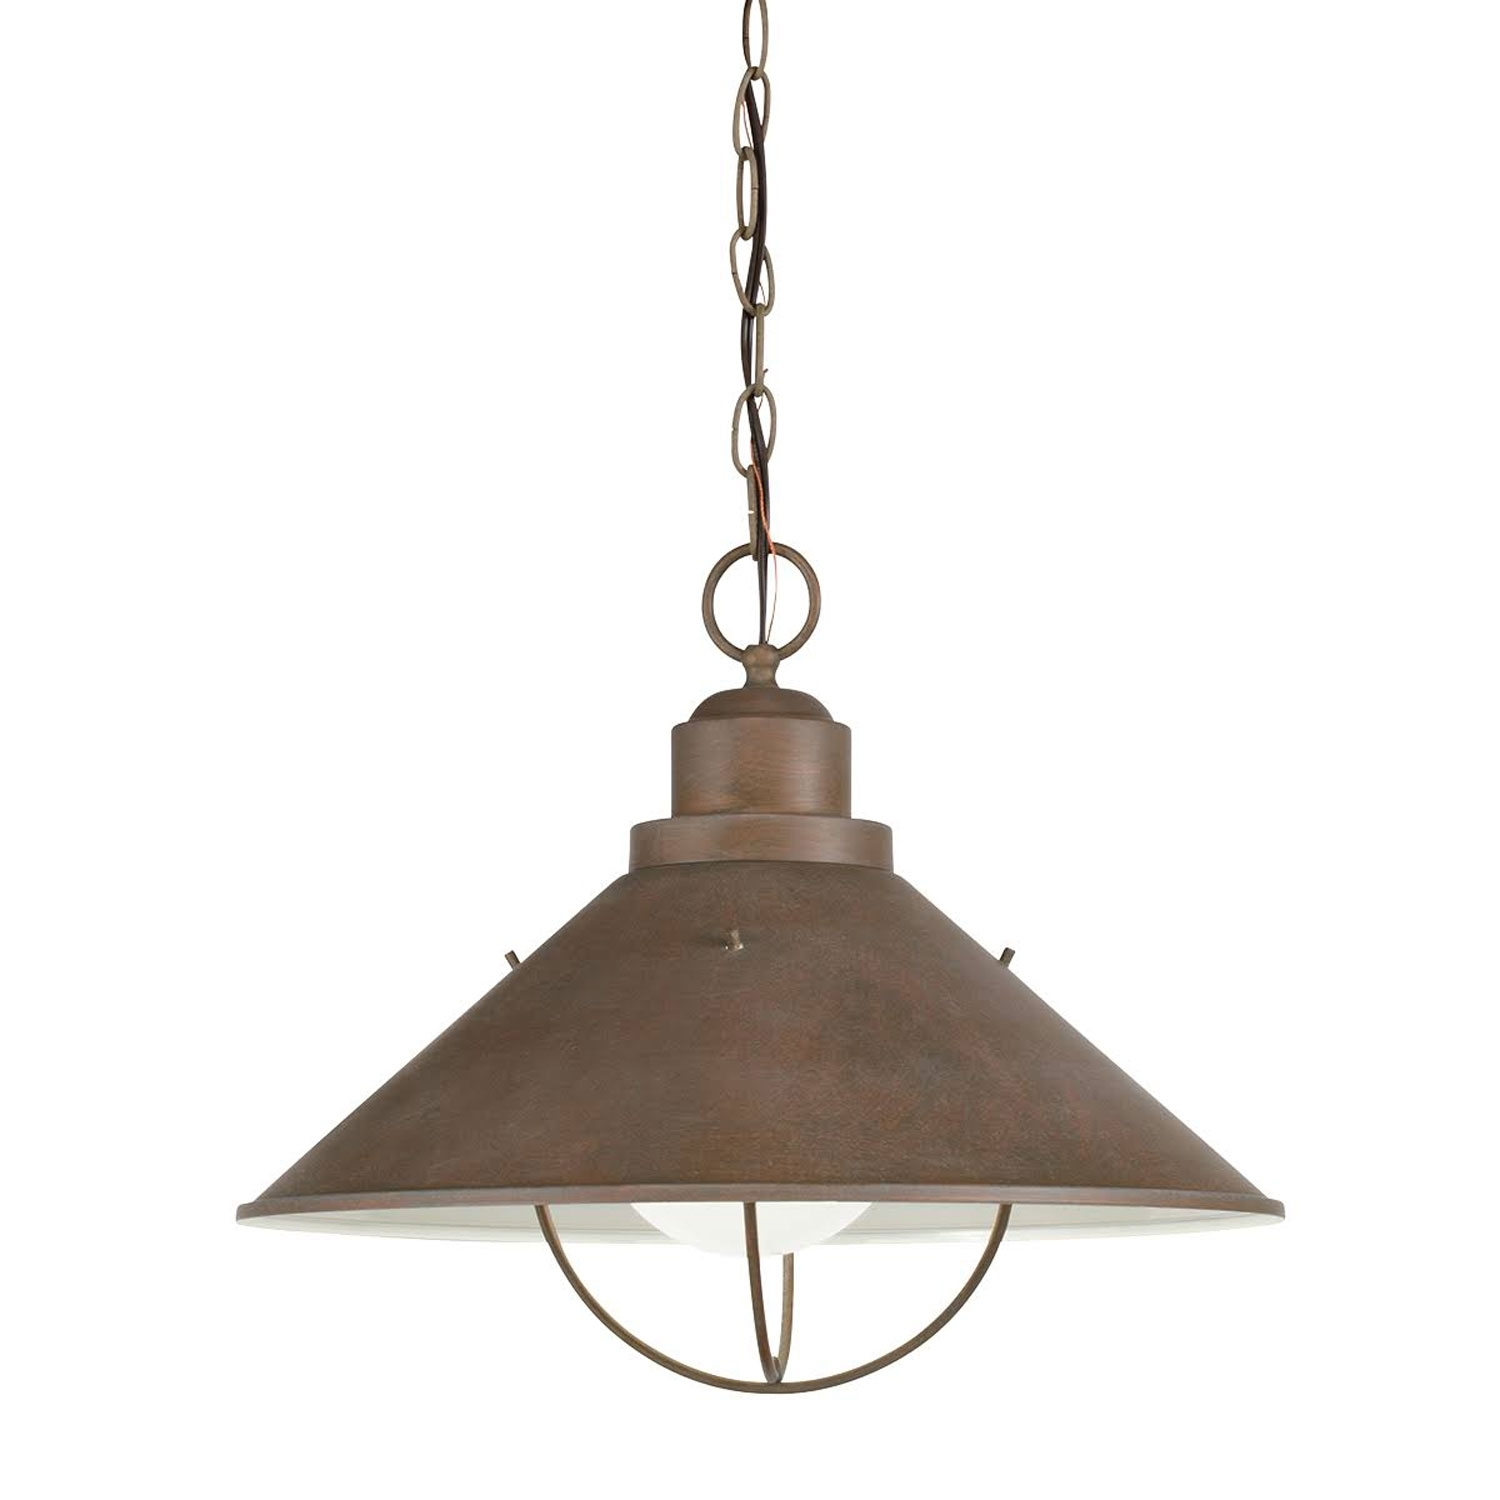 Seaside Nautical Dome Light Kichler Outdoor Pendants Outdoor Hanging Inside Outdoor Pendant Kichler Lighting (View 14 of 15)